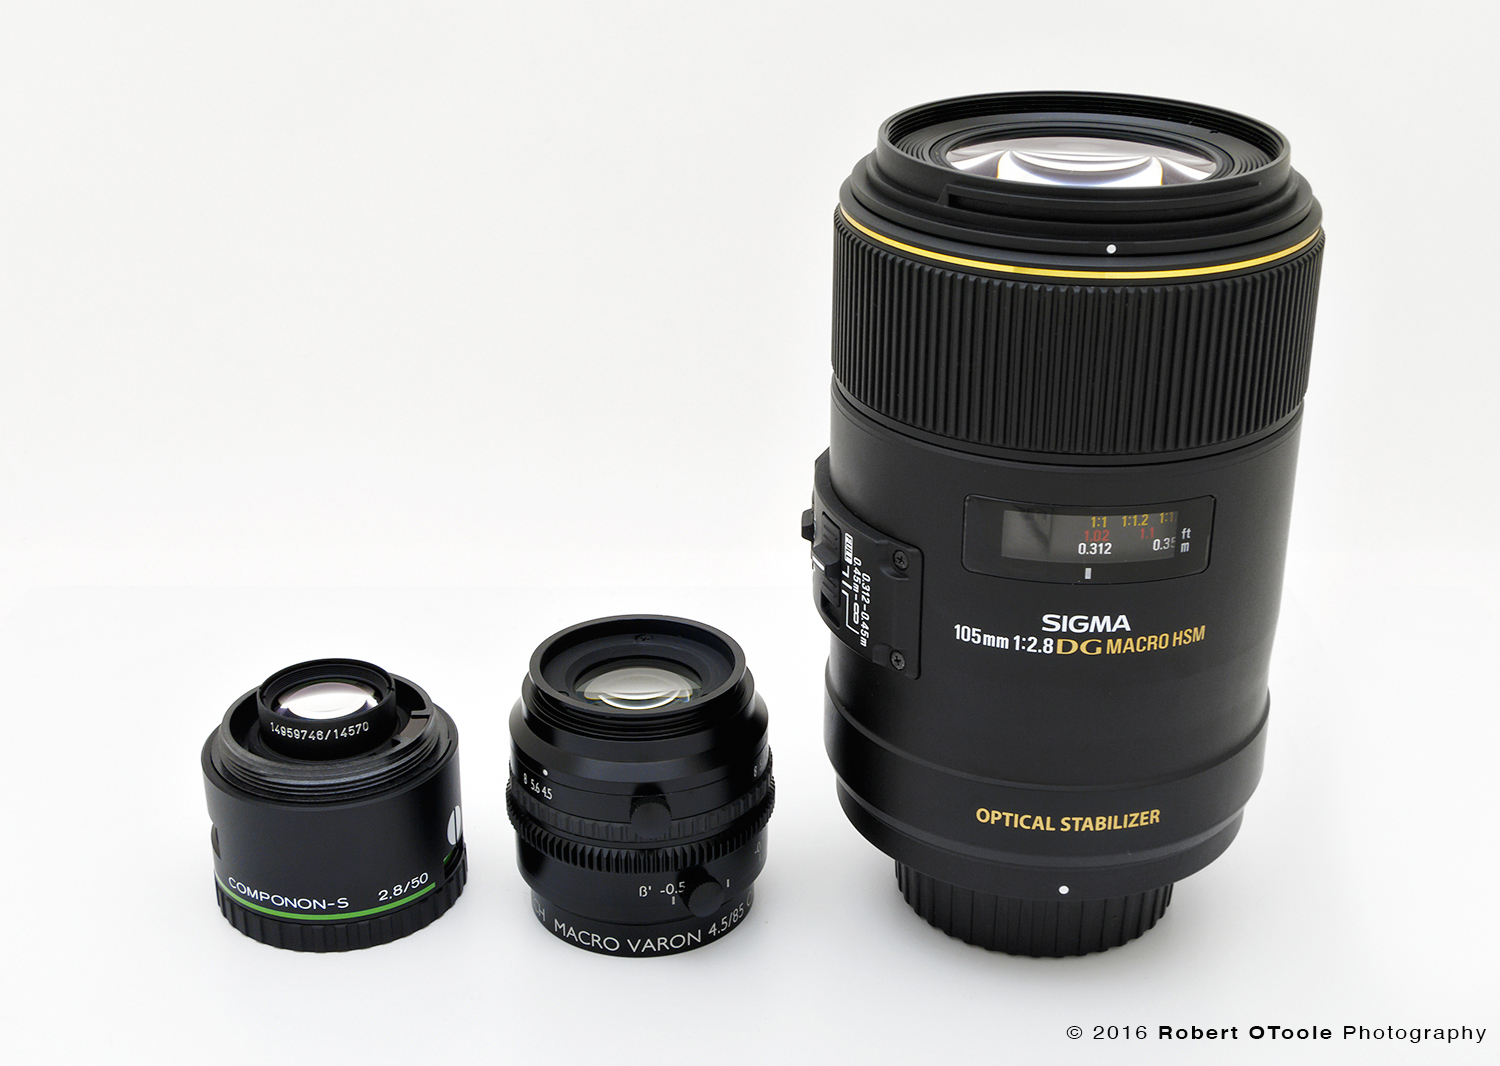 Schneider Componon-S, 50mm enlarging lens, Macro Varon, and Sigma 105mm OS Macro lens on the right.